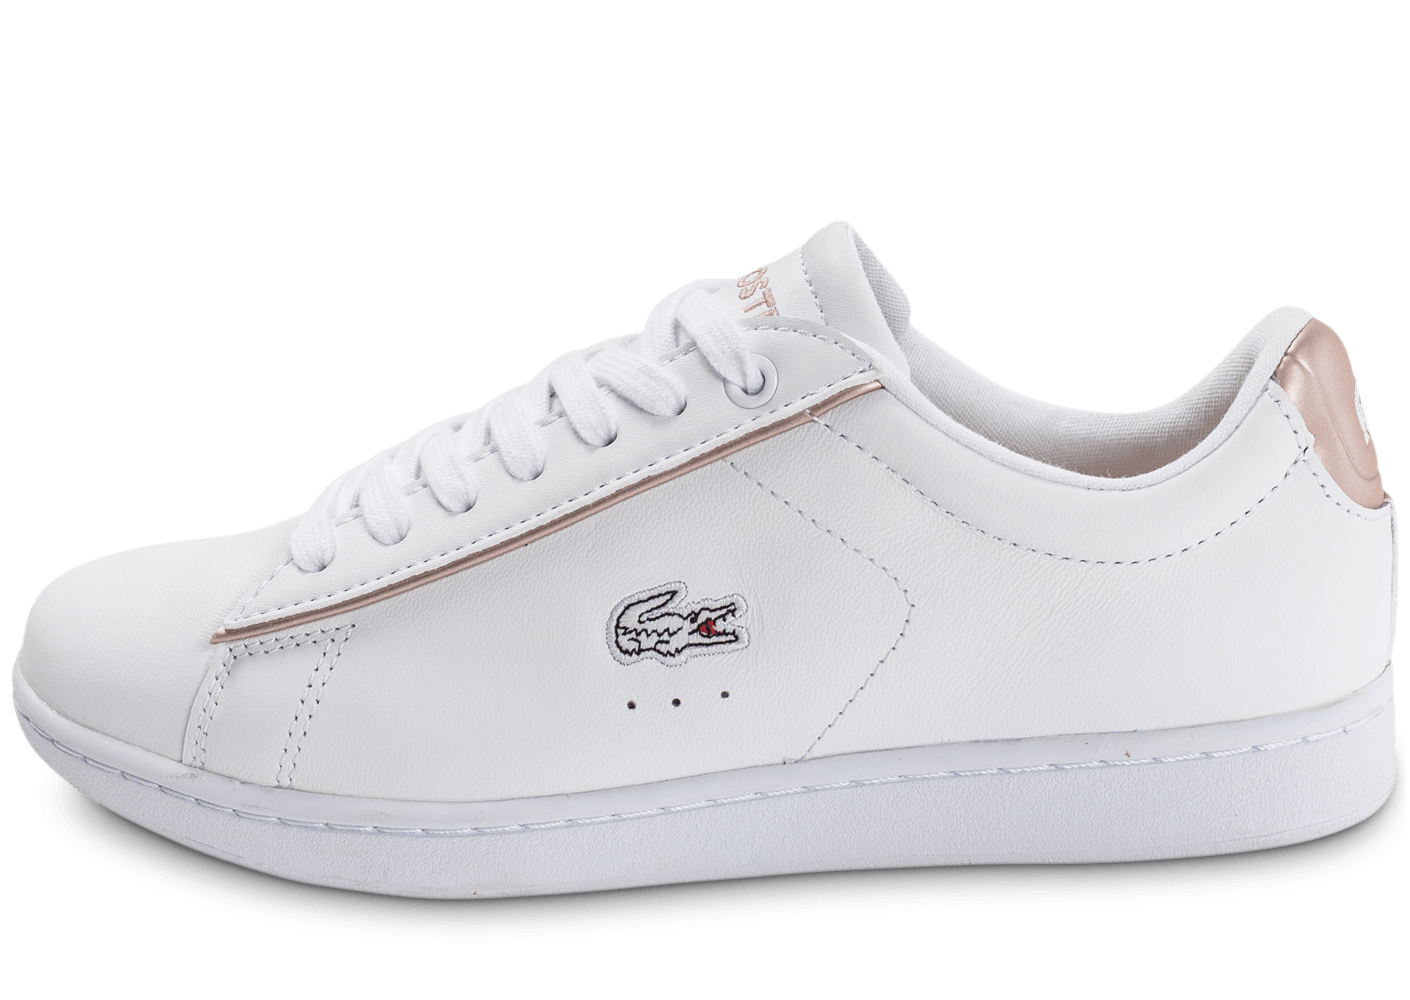 lacoste carnaby evo blanche et rose perle chaussures pour lyc ens chausport. Black Bedroom Furniture Sets. Home Design Ideas